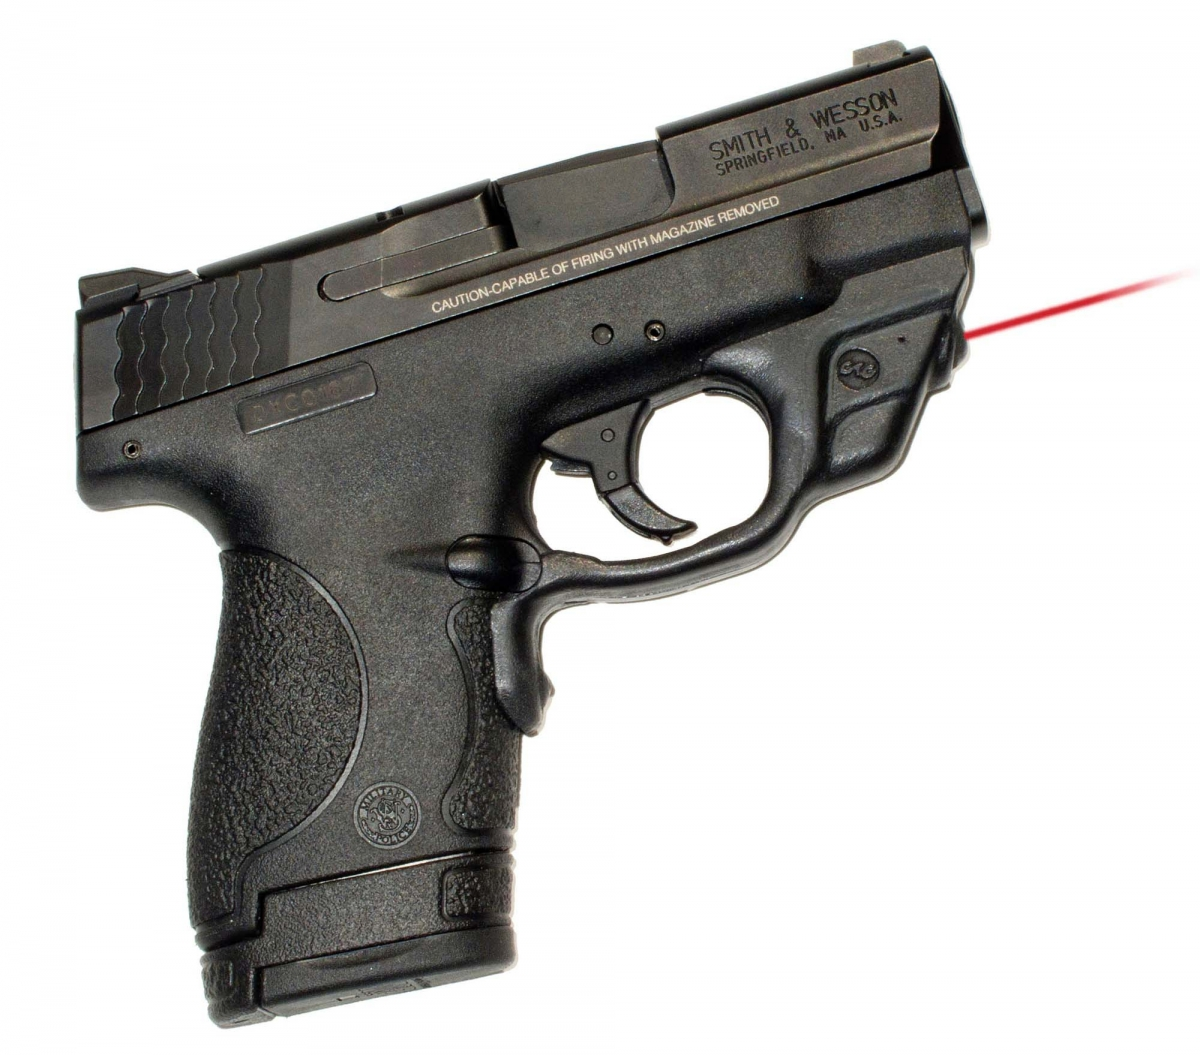 """Establishing an Electro-Optics Division puts Smith & Wesson in line with many major competitors on the road of establishing a """"package"""" market offer of firearms and dedicated accessories for civilian and professional users alike"""